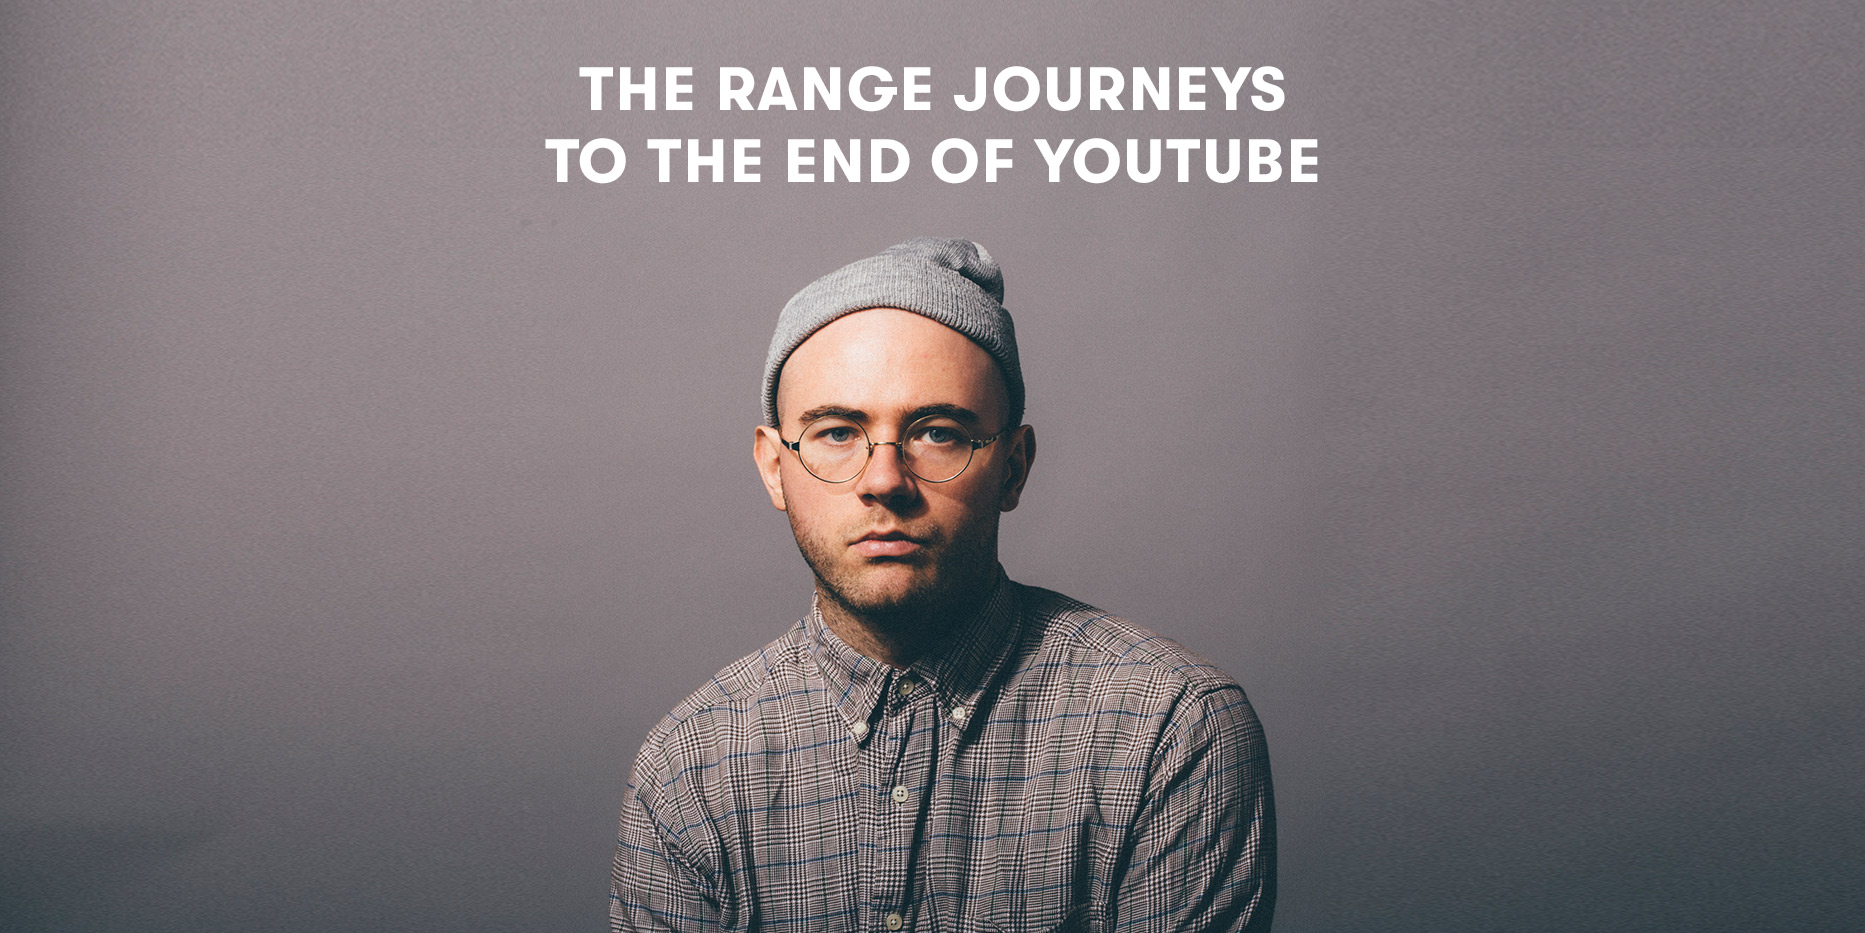 Interviews: The Range Journeys to the End of YouTube